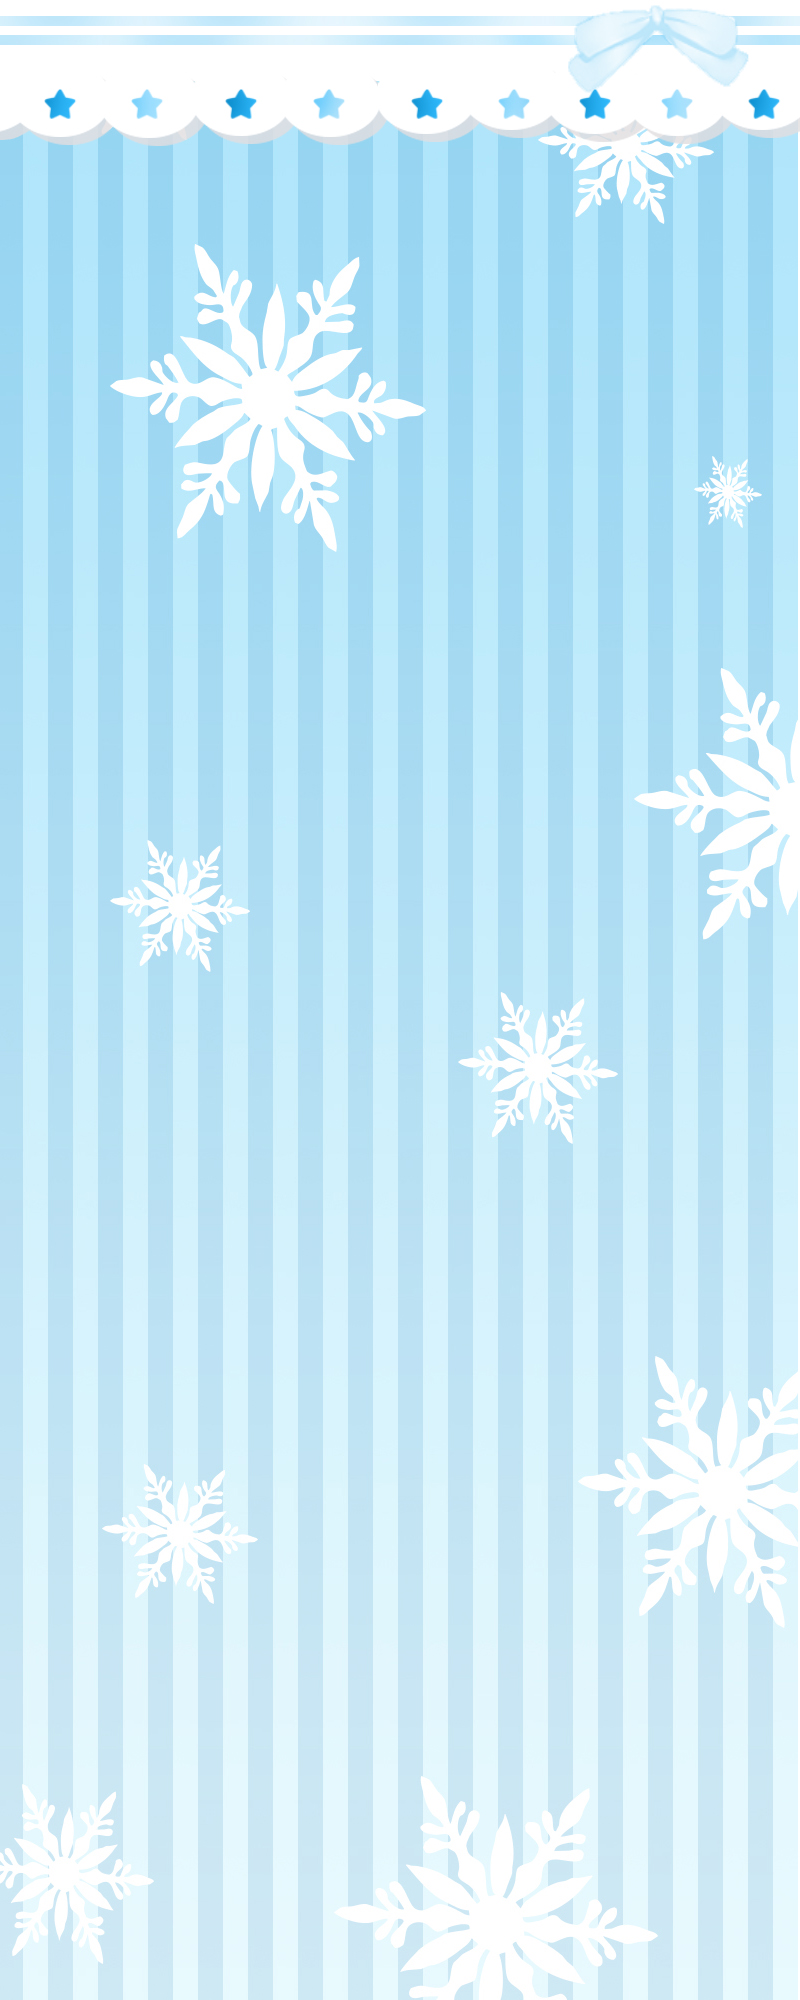 [Custom Box Background] Winter Snow by IceCreamKari